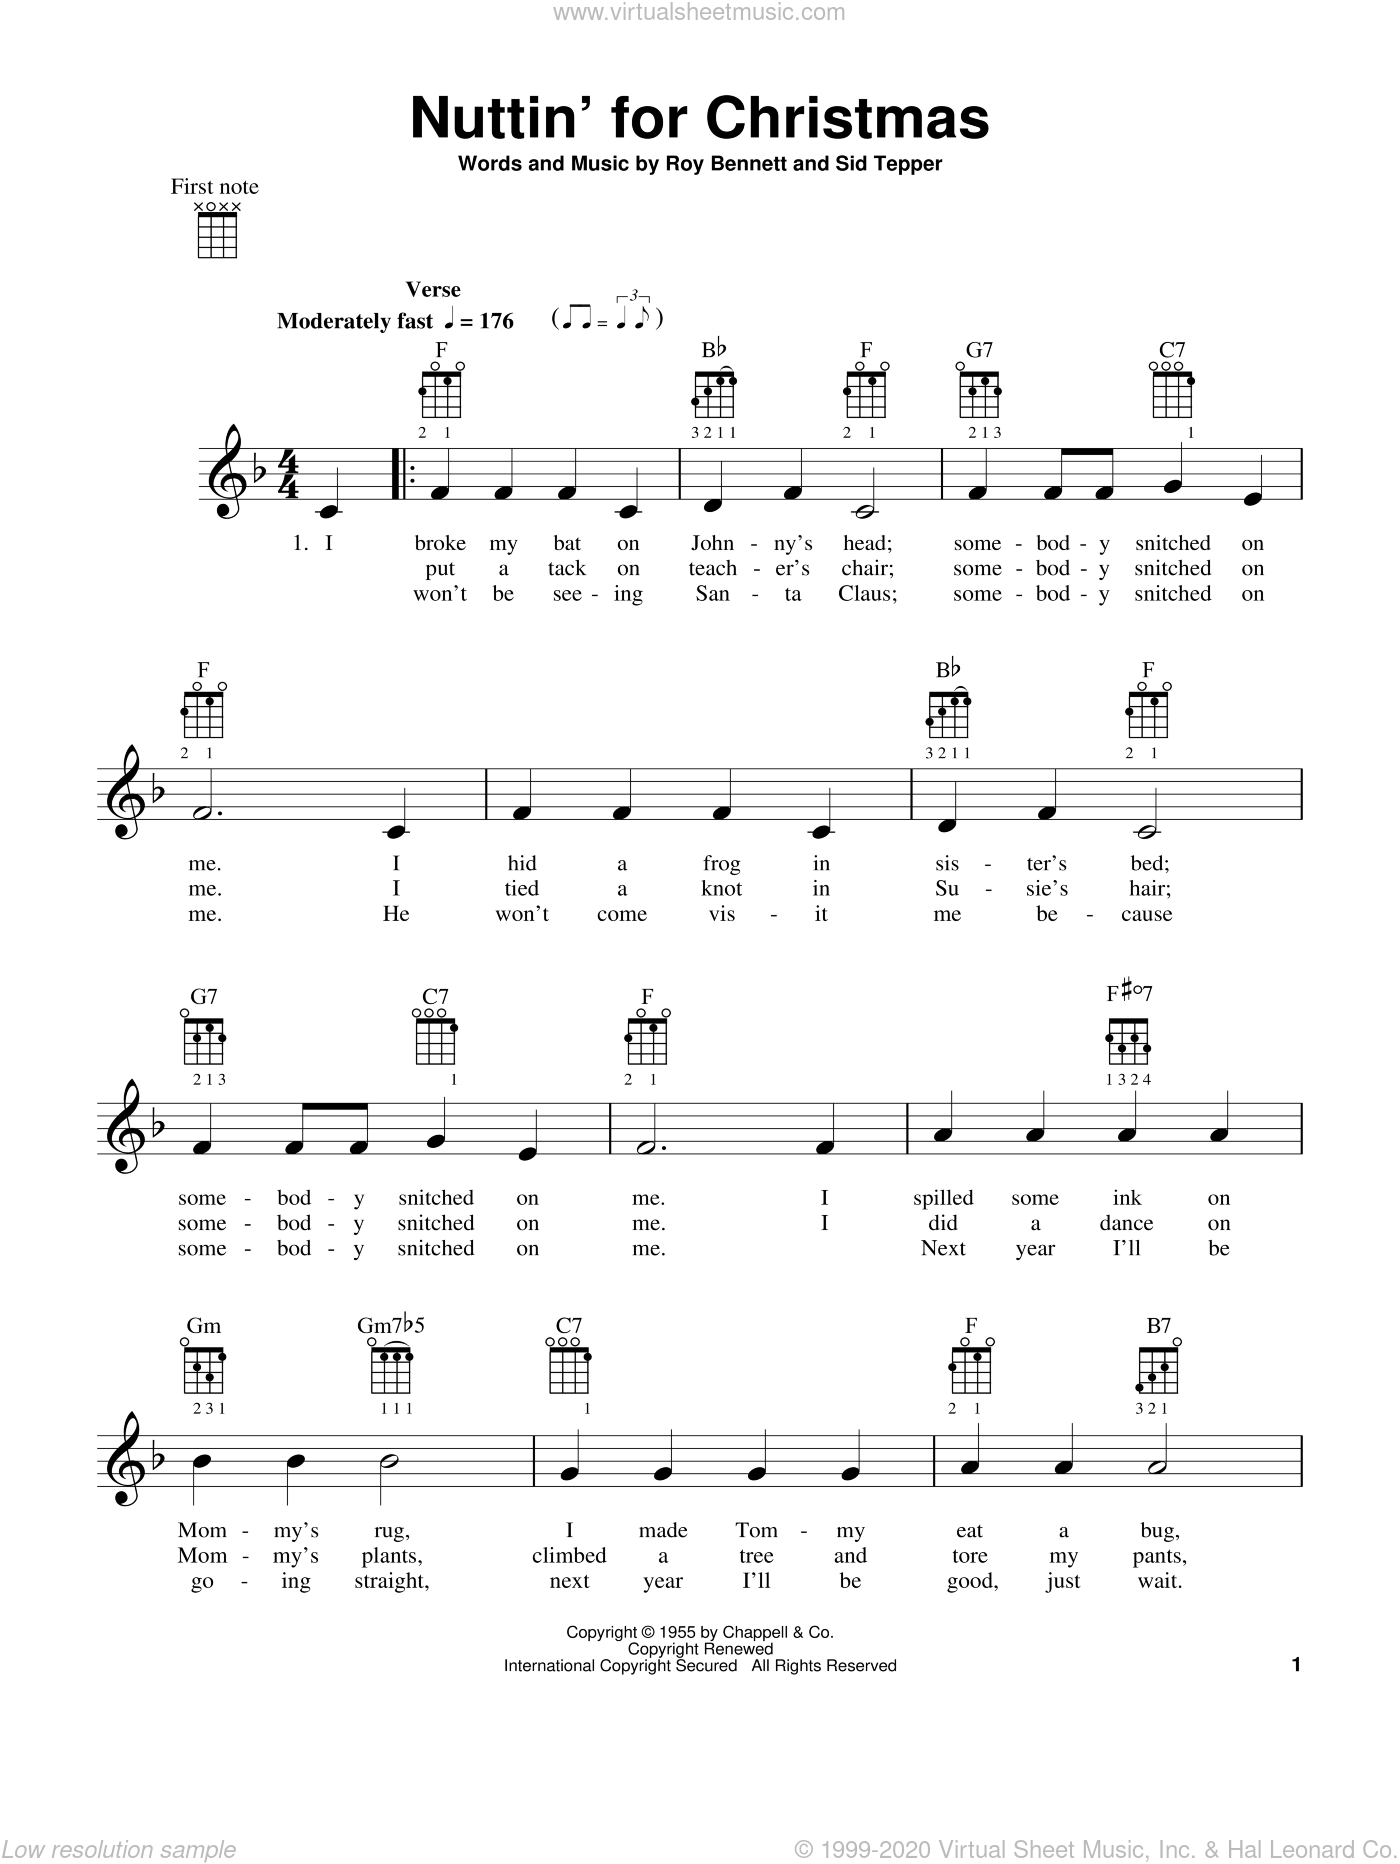 Nuttin' For Christmas sheet music for ukulele by Roy Bennett and Sid Tepper, intermediate. Score Image Preview.